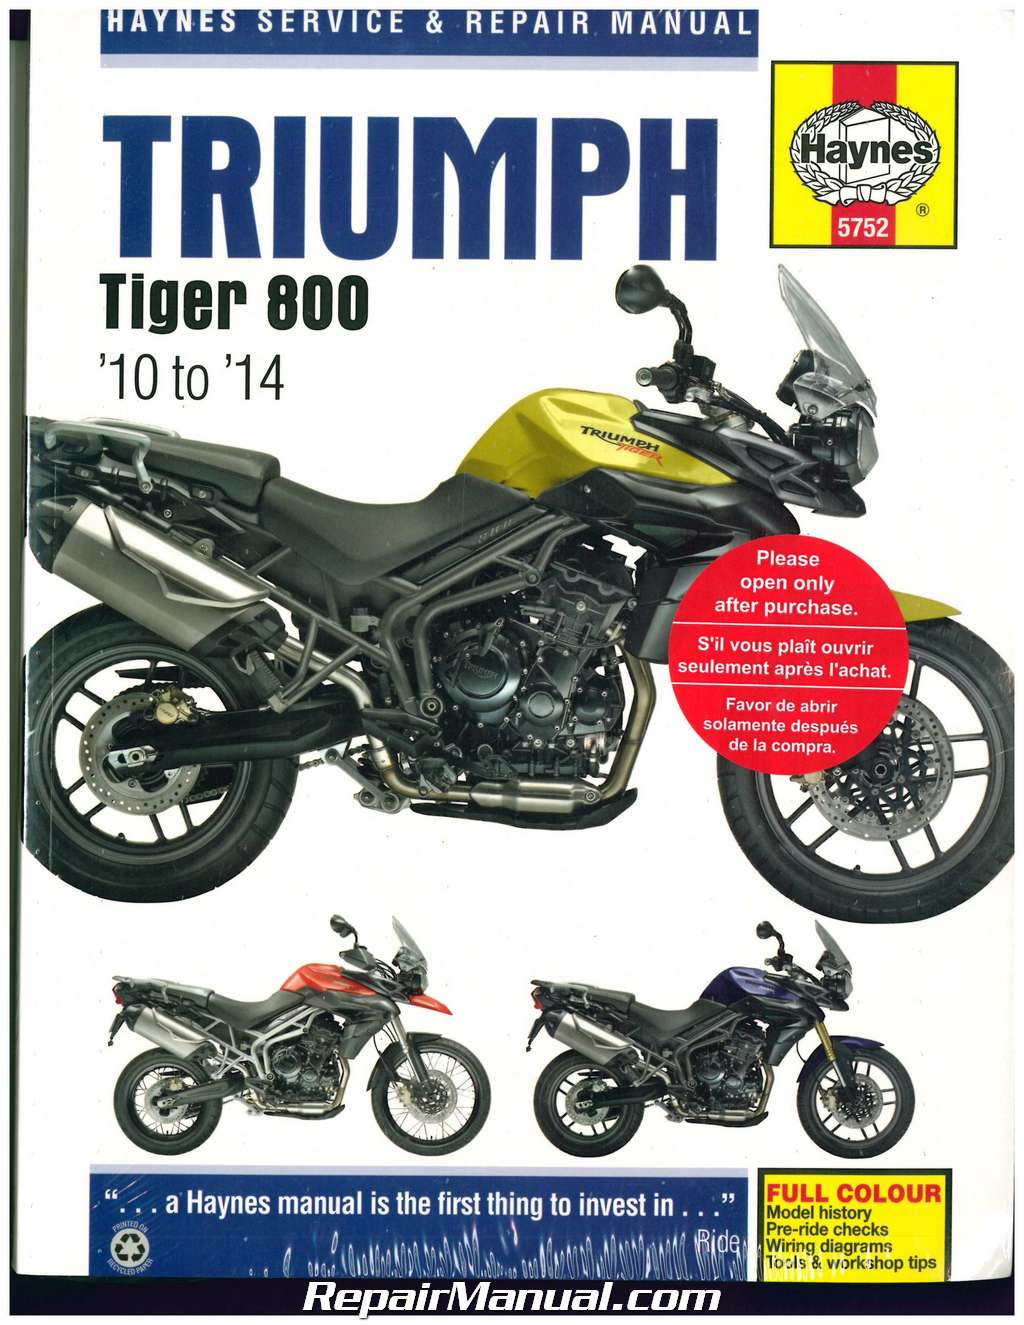 triumph tiger 800 800 xc 2010 2014 haynes motorcycle repair manual rh repairmanual com Haynes Repair Manuals Mazda Haynes Repair Manual 1991 Honda Civic